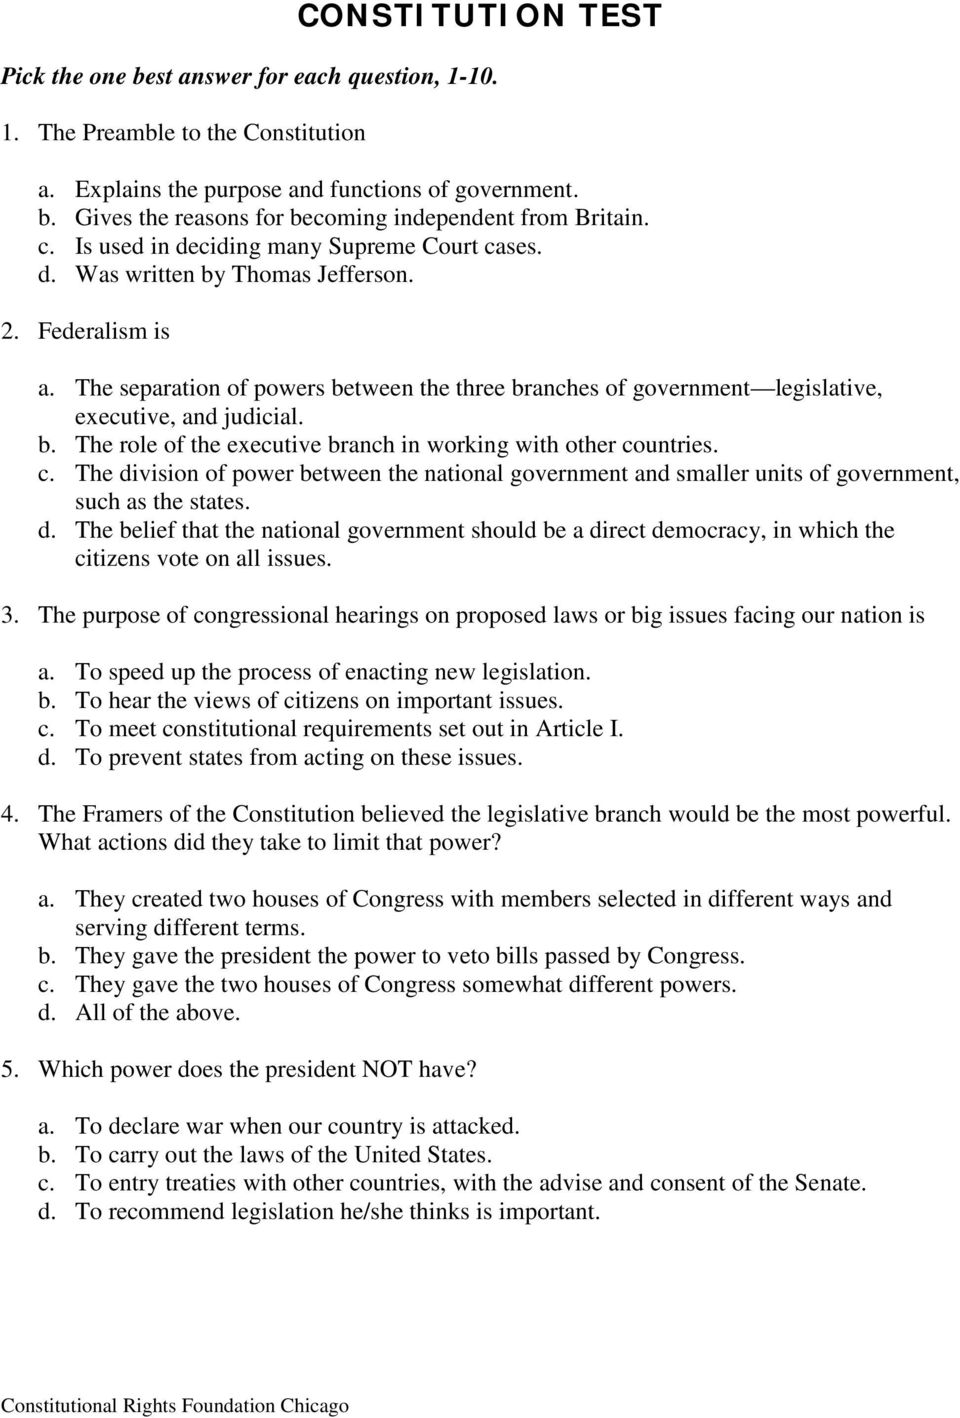 The separation of powers between the three branches of government legislative, executive, and judicial. b. The role of the executive branch in working with other co